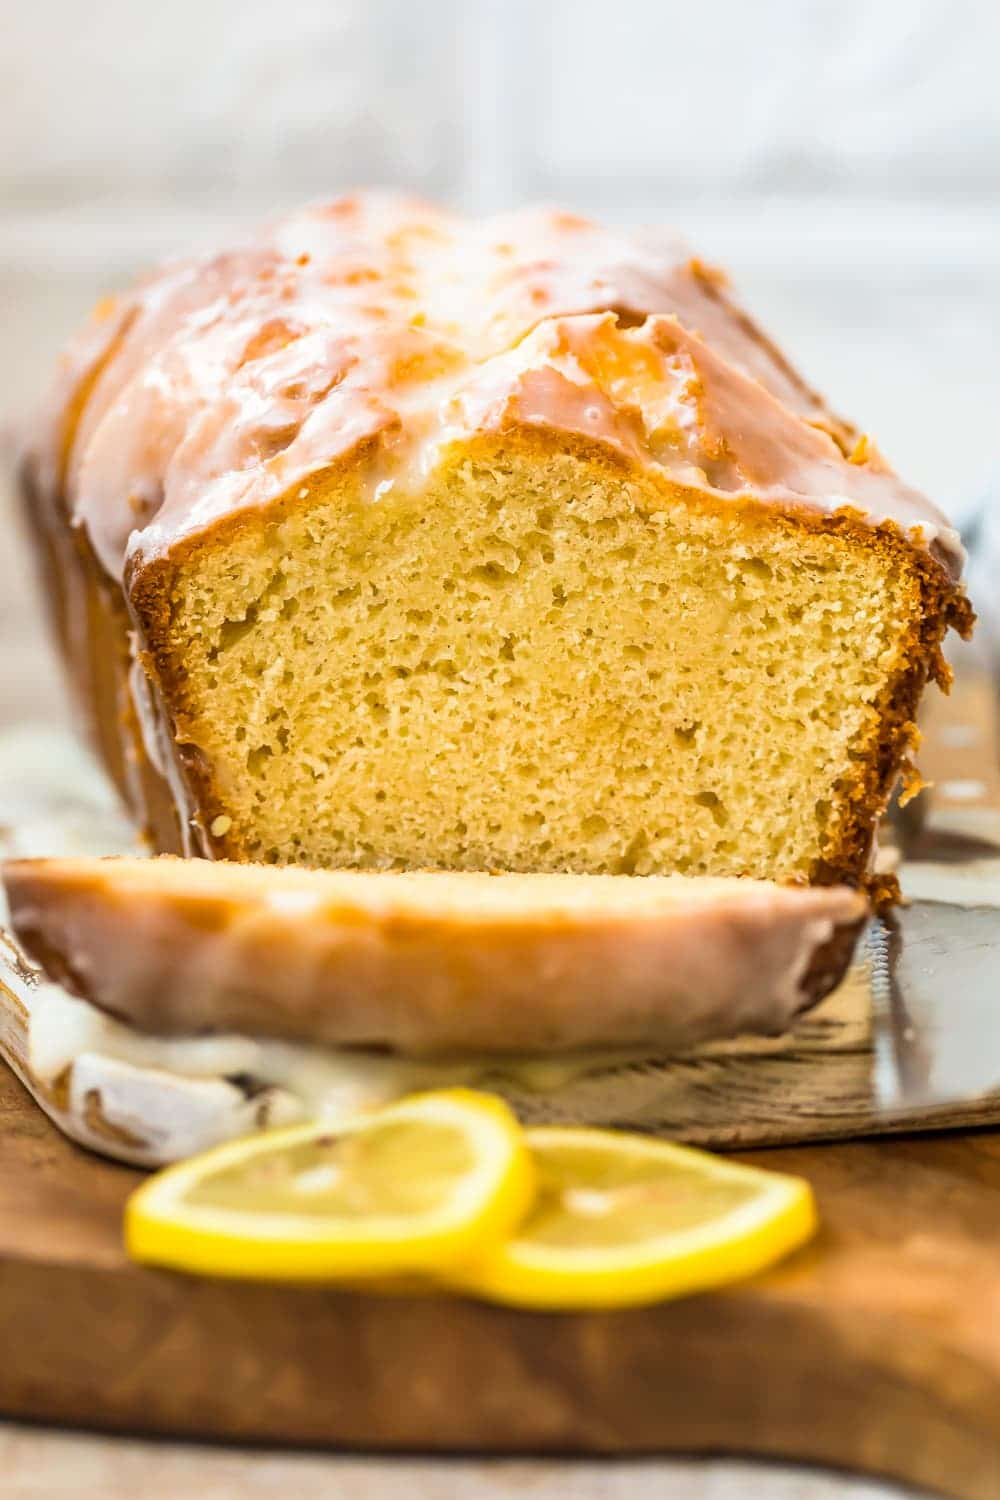 iced lemon loaf cake on a wooden cutting board